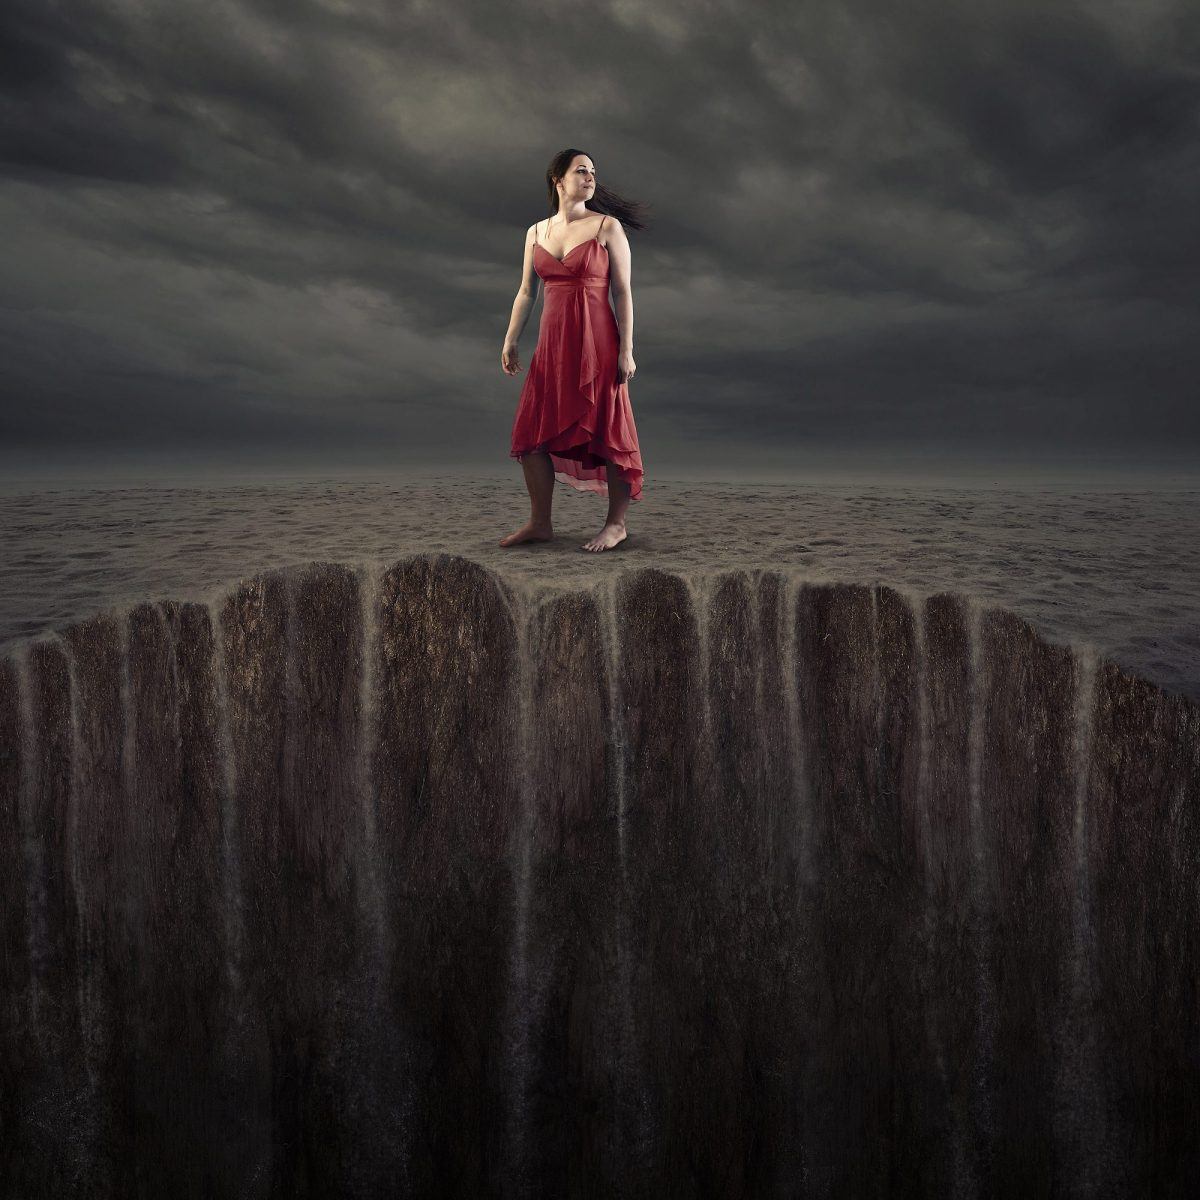 A woman standing on sand that is sinking.